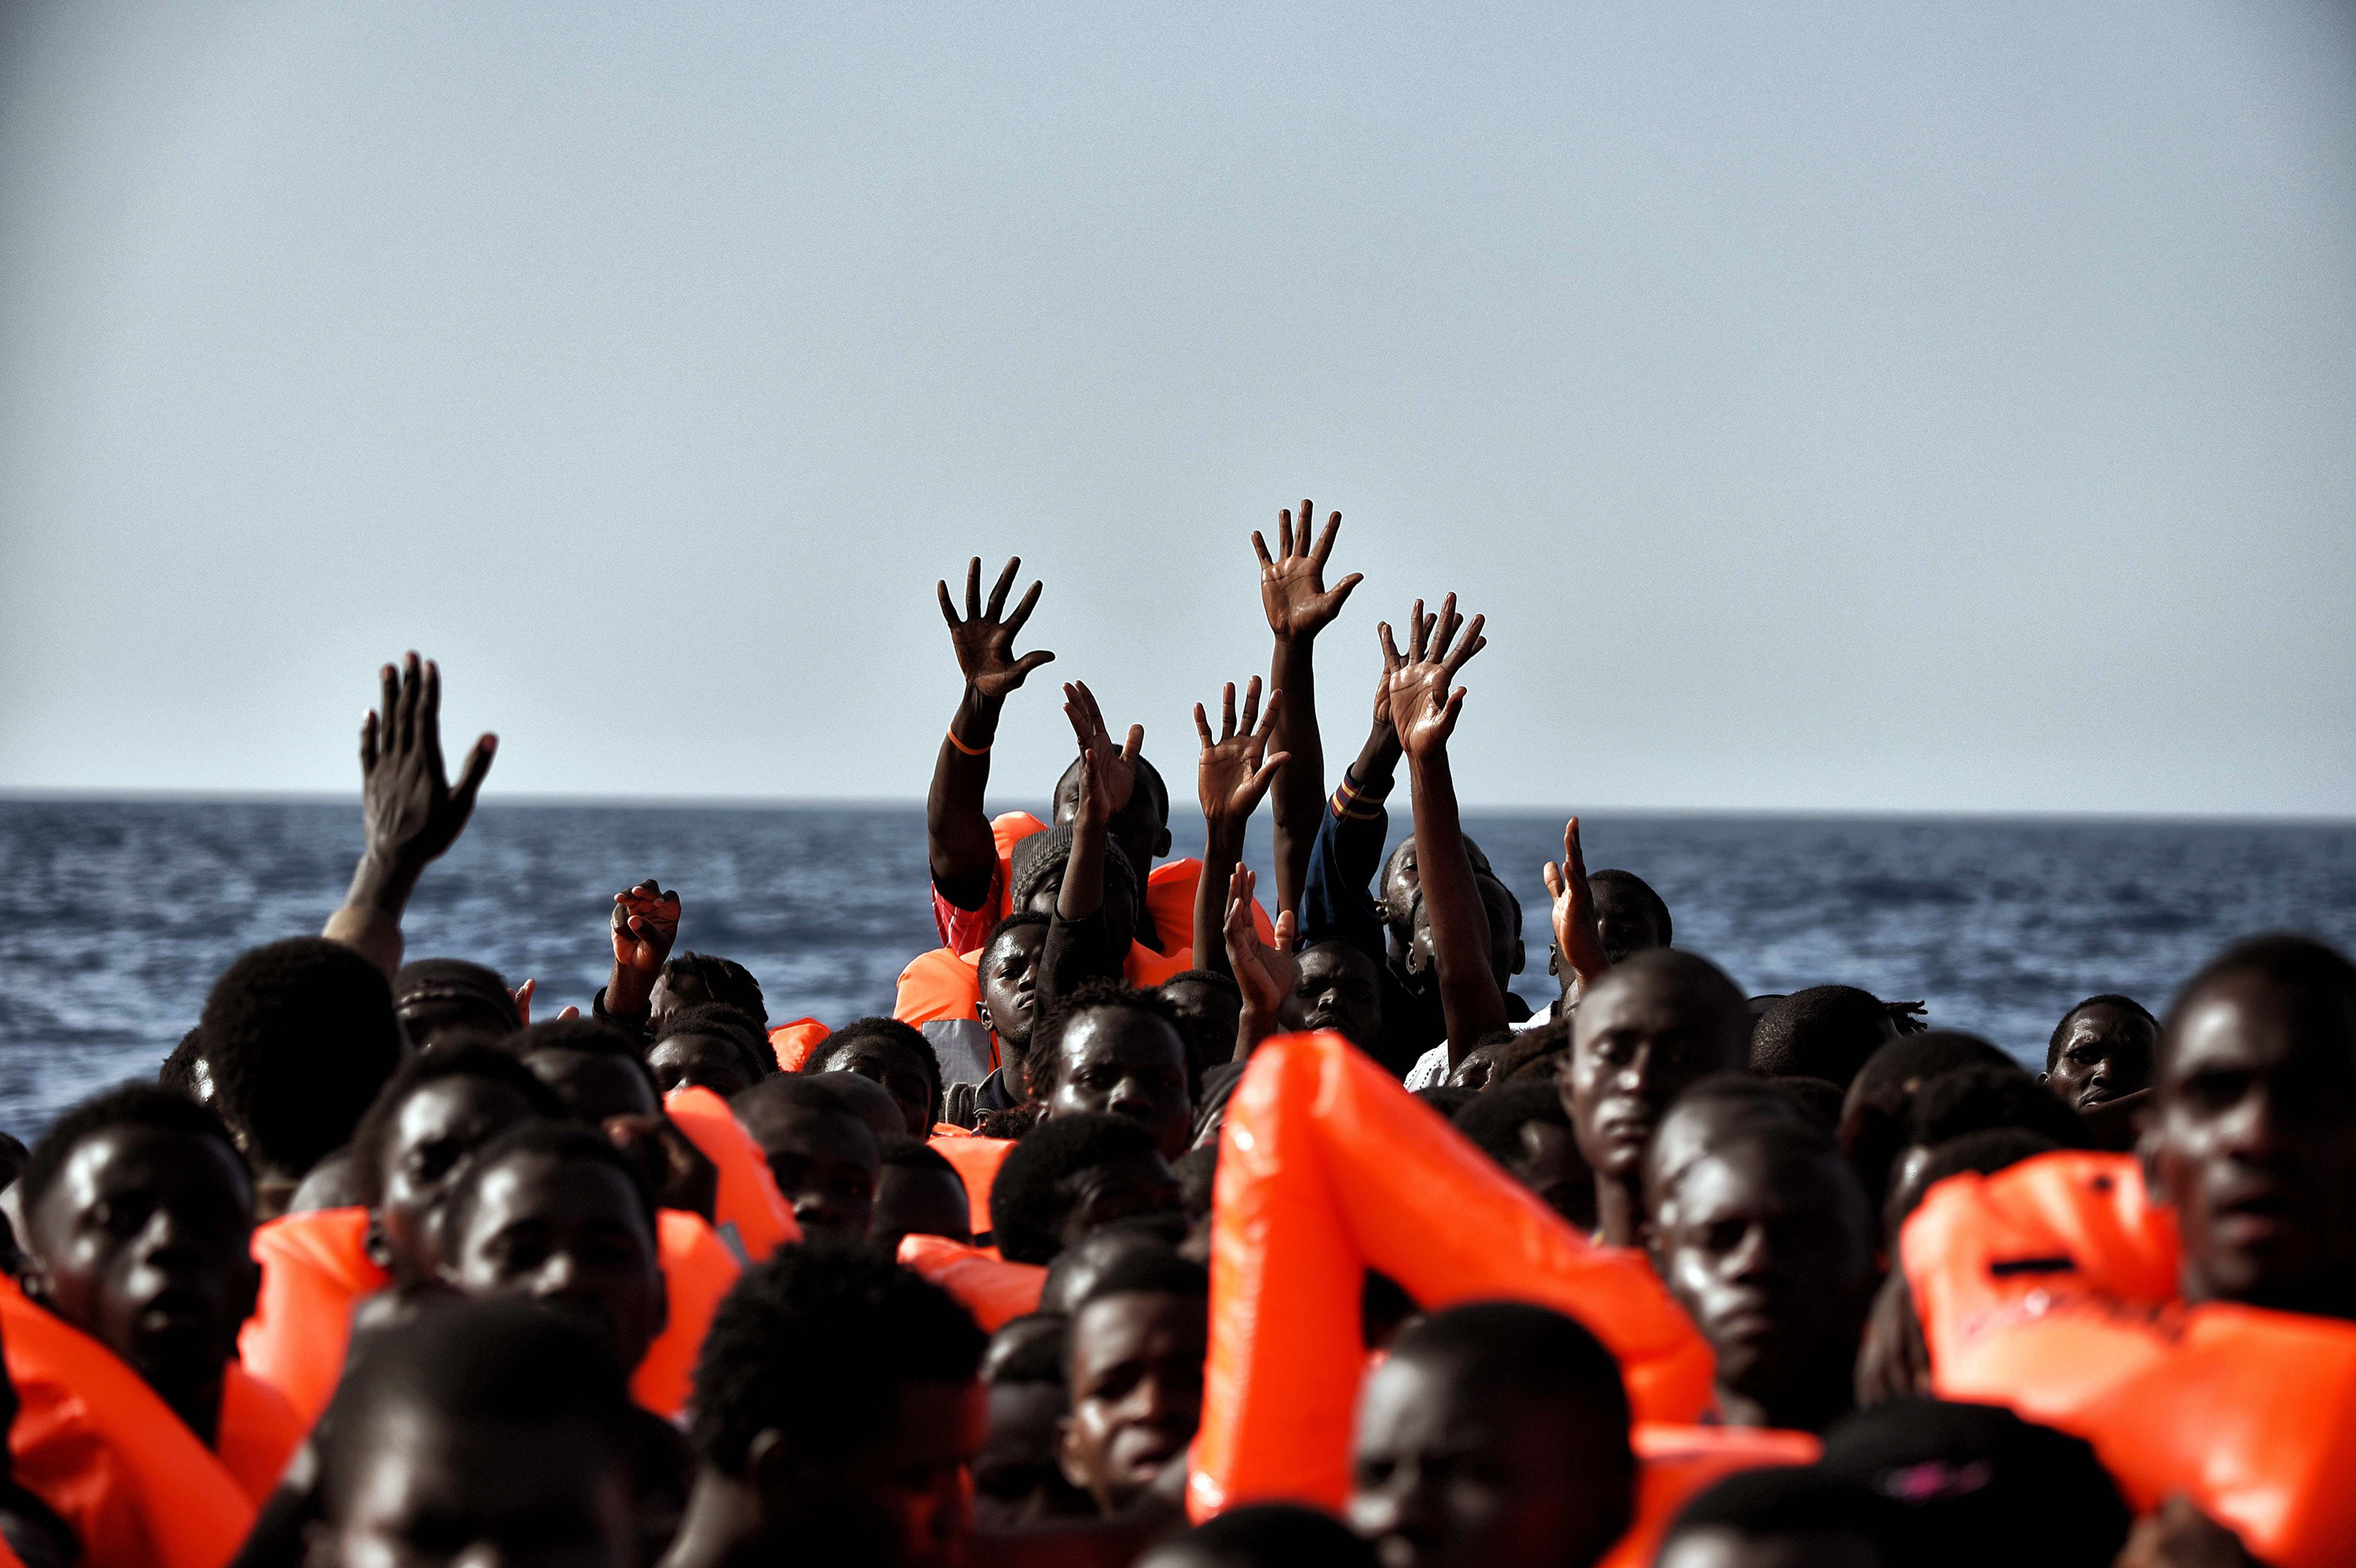 TOPSHOT - Migrants wait to be rescued as they drift in the Mediterranean Sea some 20 nautical miles north off the coast of Libya on October 3, 2016. Italy coordinated the rescue of more than 5,600 migrants off Libya, three years to the day after 366 people died in a sinking that first alerted the world to the Mediterranean migrant crisis. / AFP / ARIS MESSINIS (Photo credit should read ARIS MESSINIS/AFP/Getty Images)